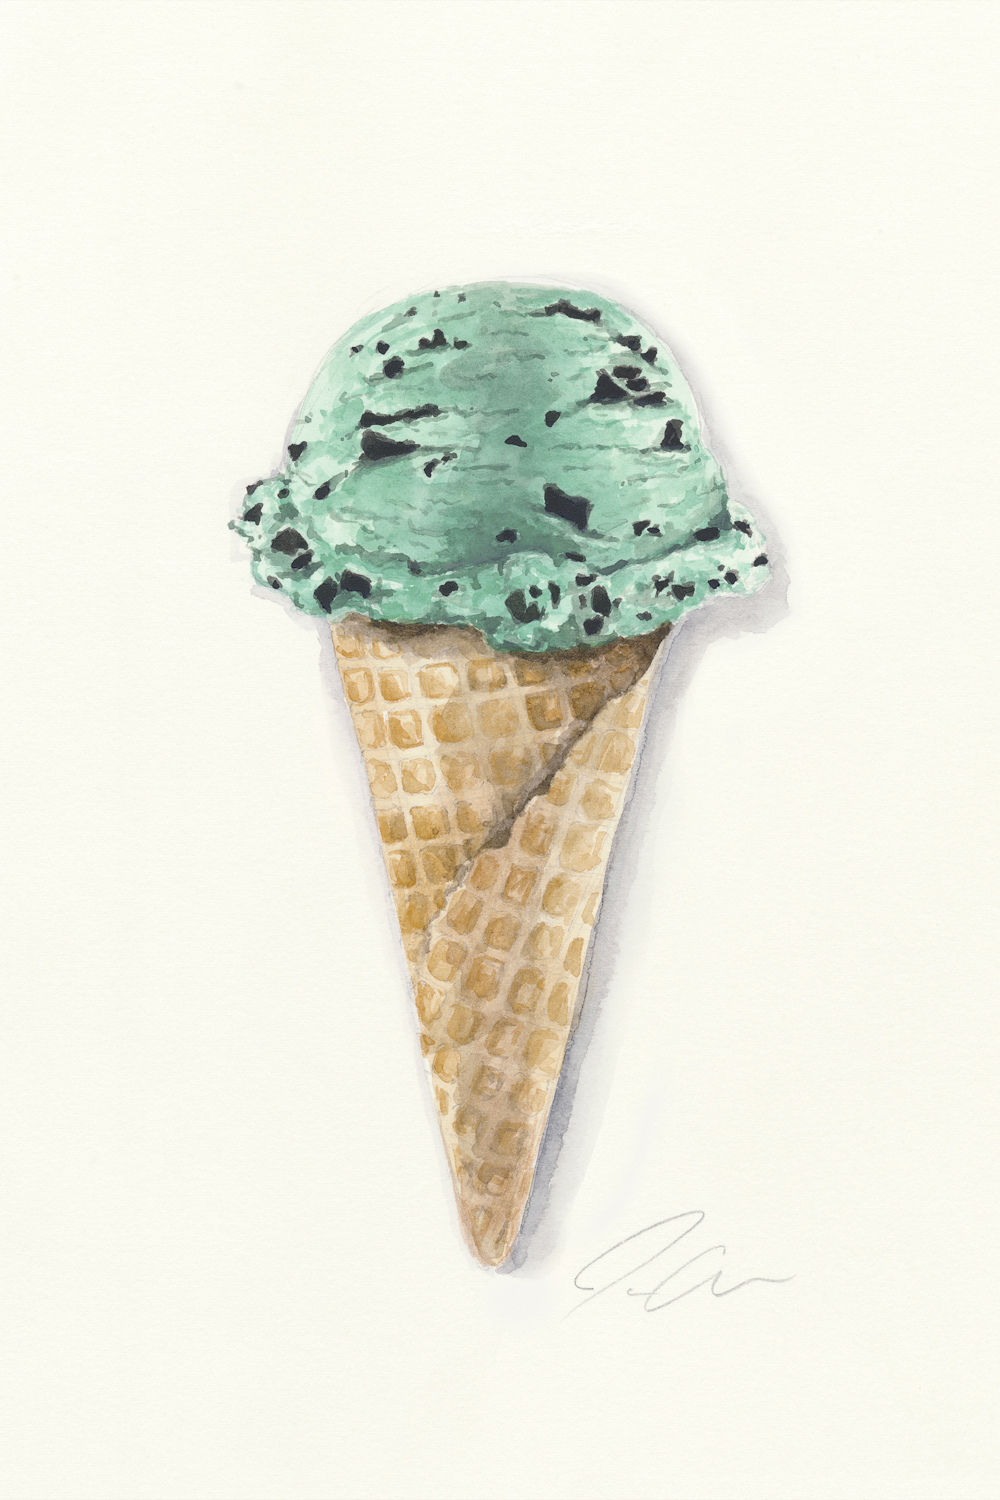 a single scoop of mint chocolate chip ice cream in waffle cone